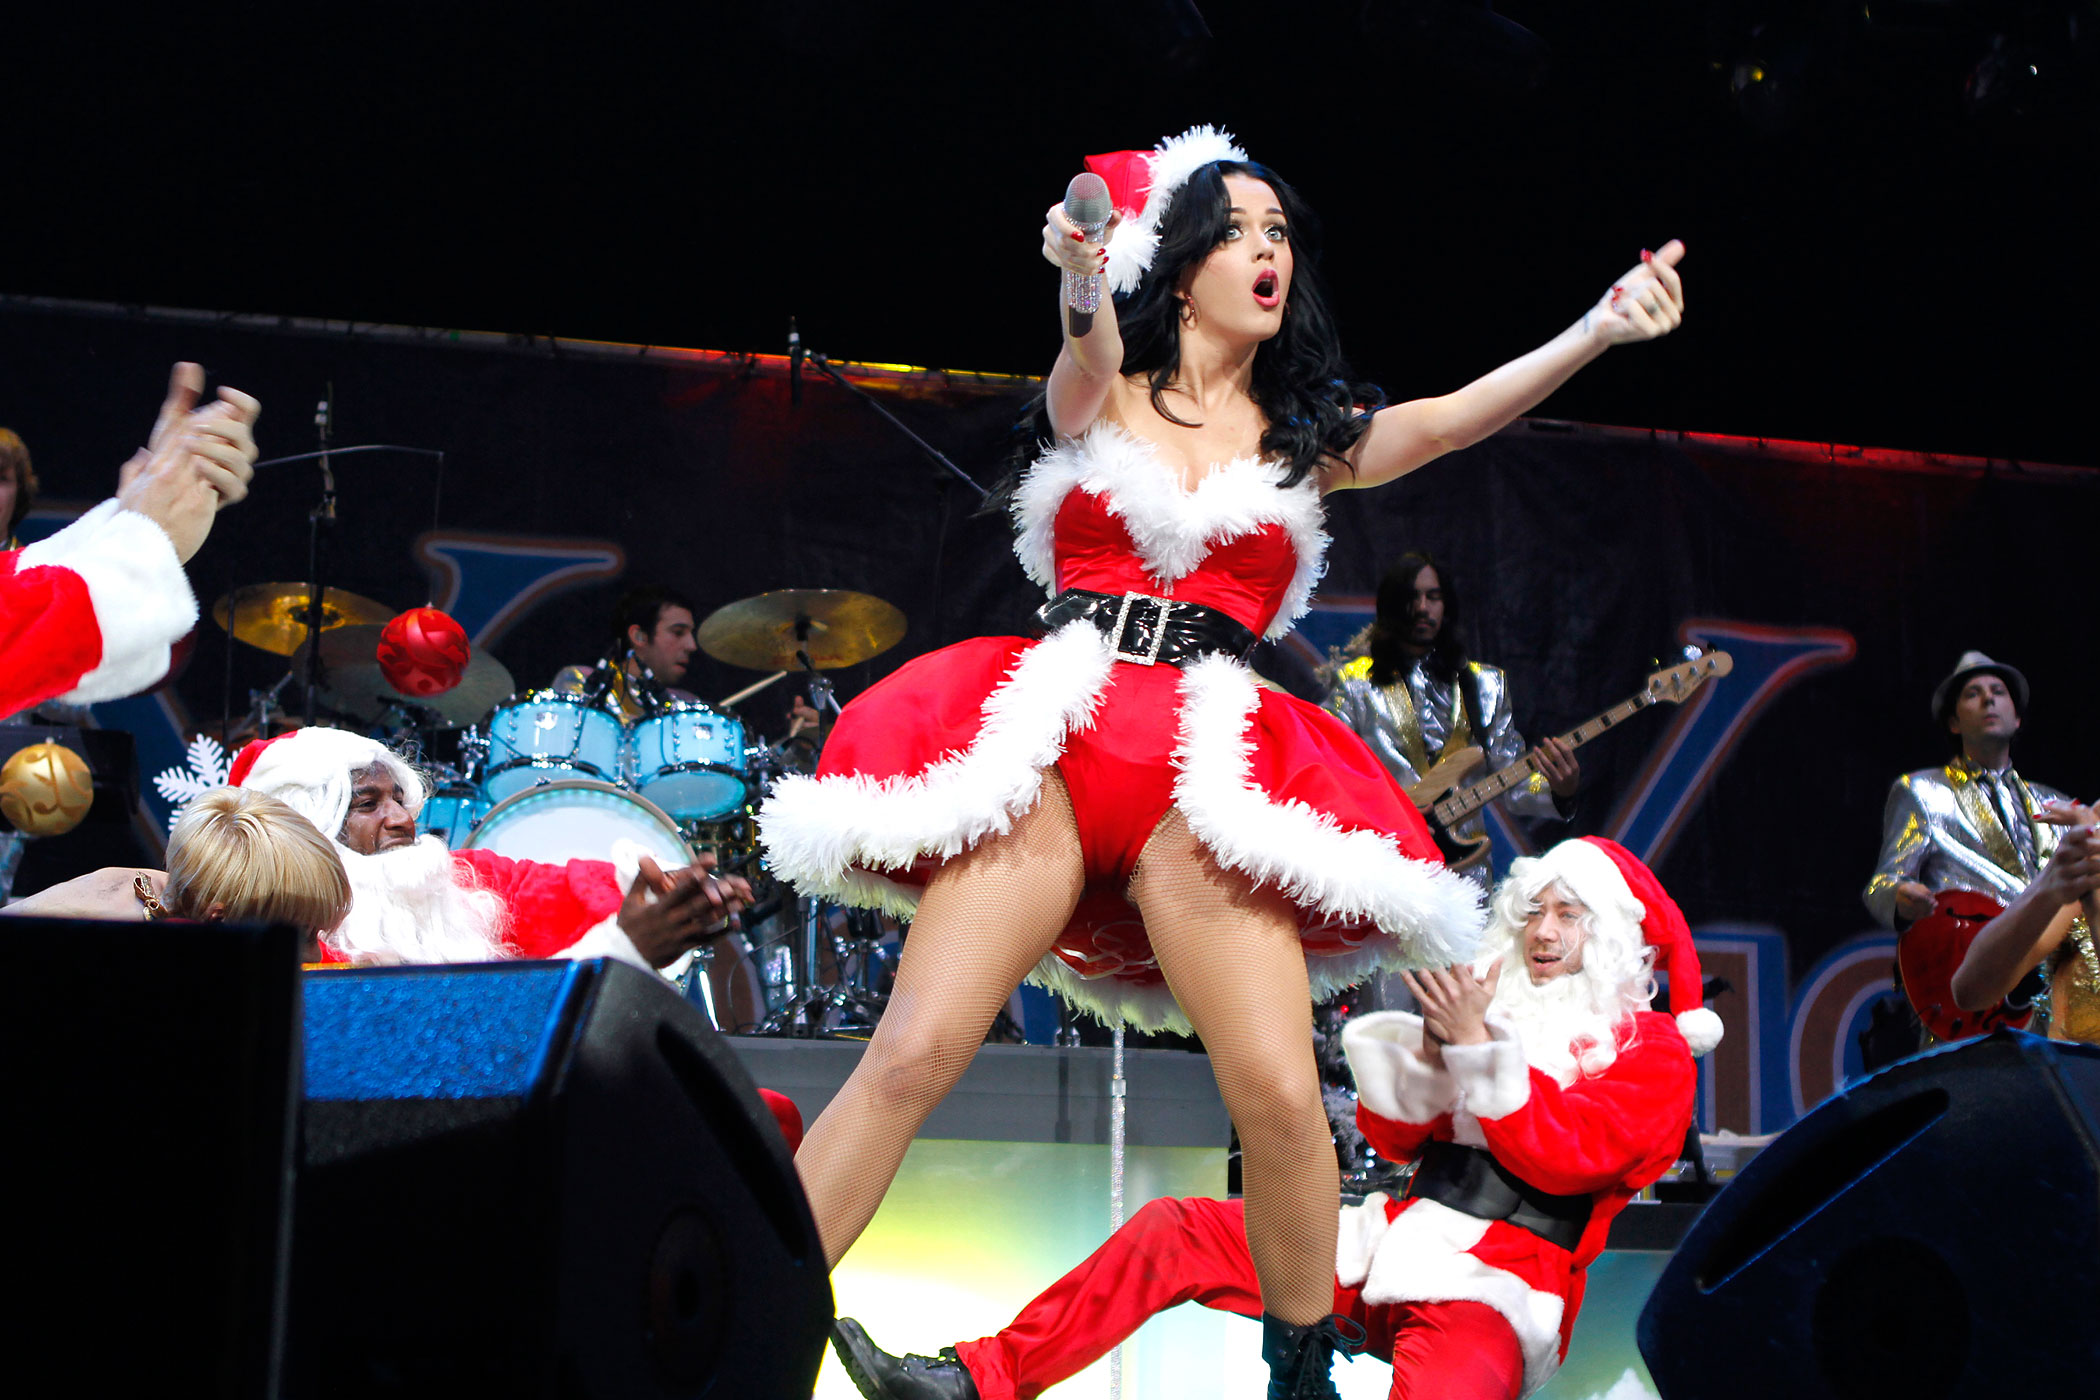 Katy Perry interacts with the crowd at the Y100 Jingle Ball Concert held at the Bank Atlantic Center in Ft. Lauderdale, FL. December 11, 2010.